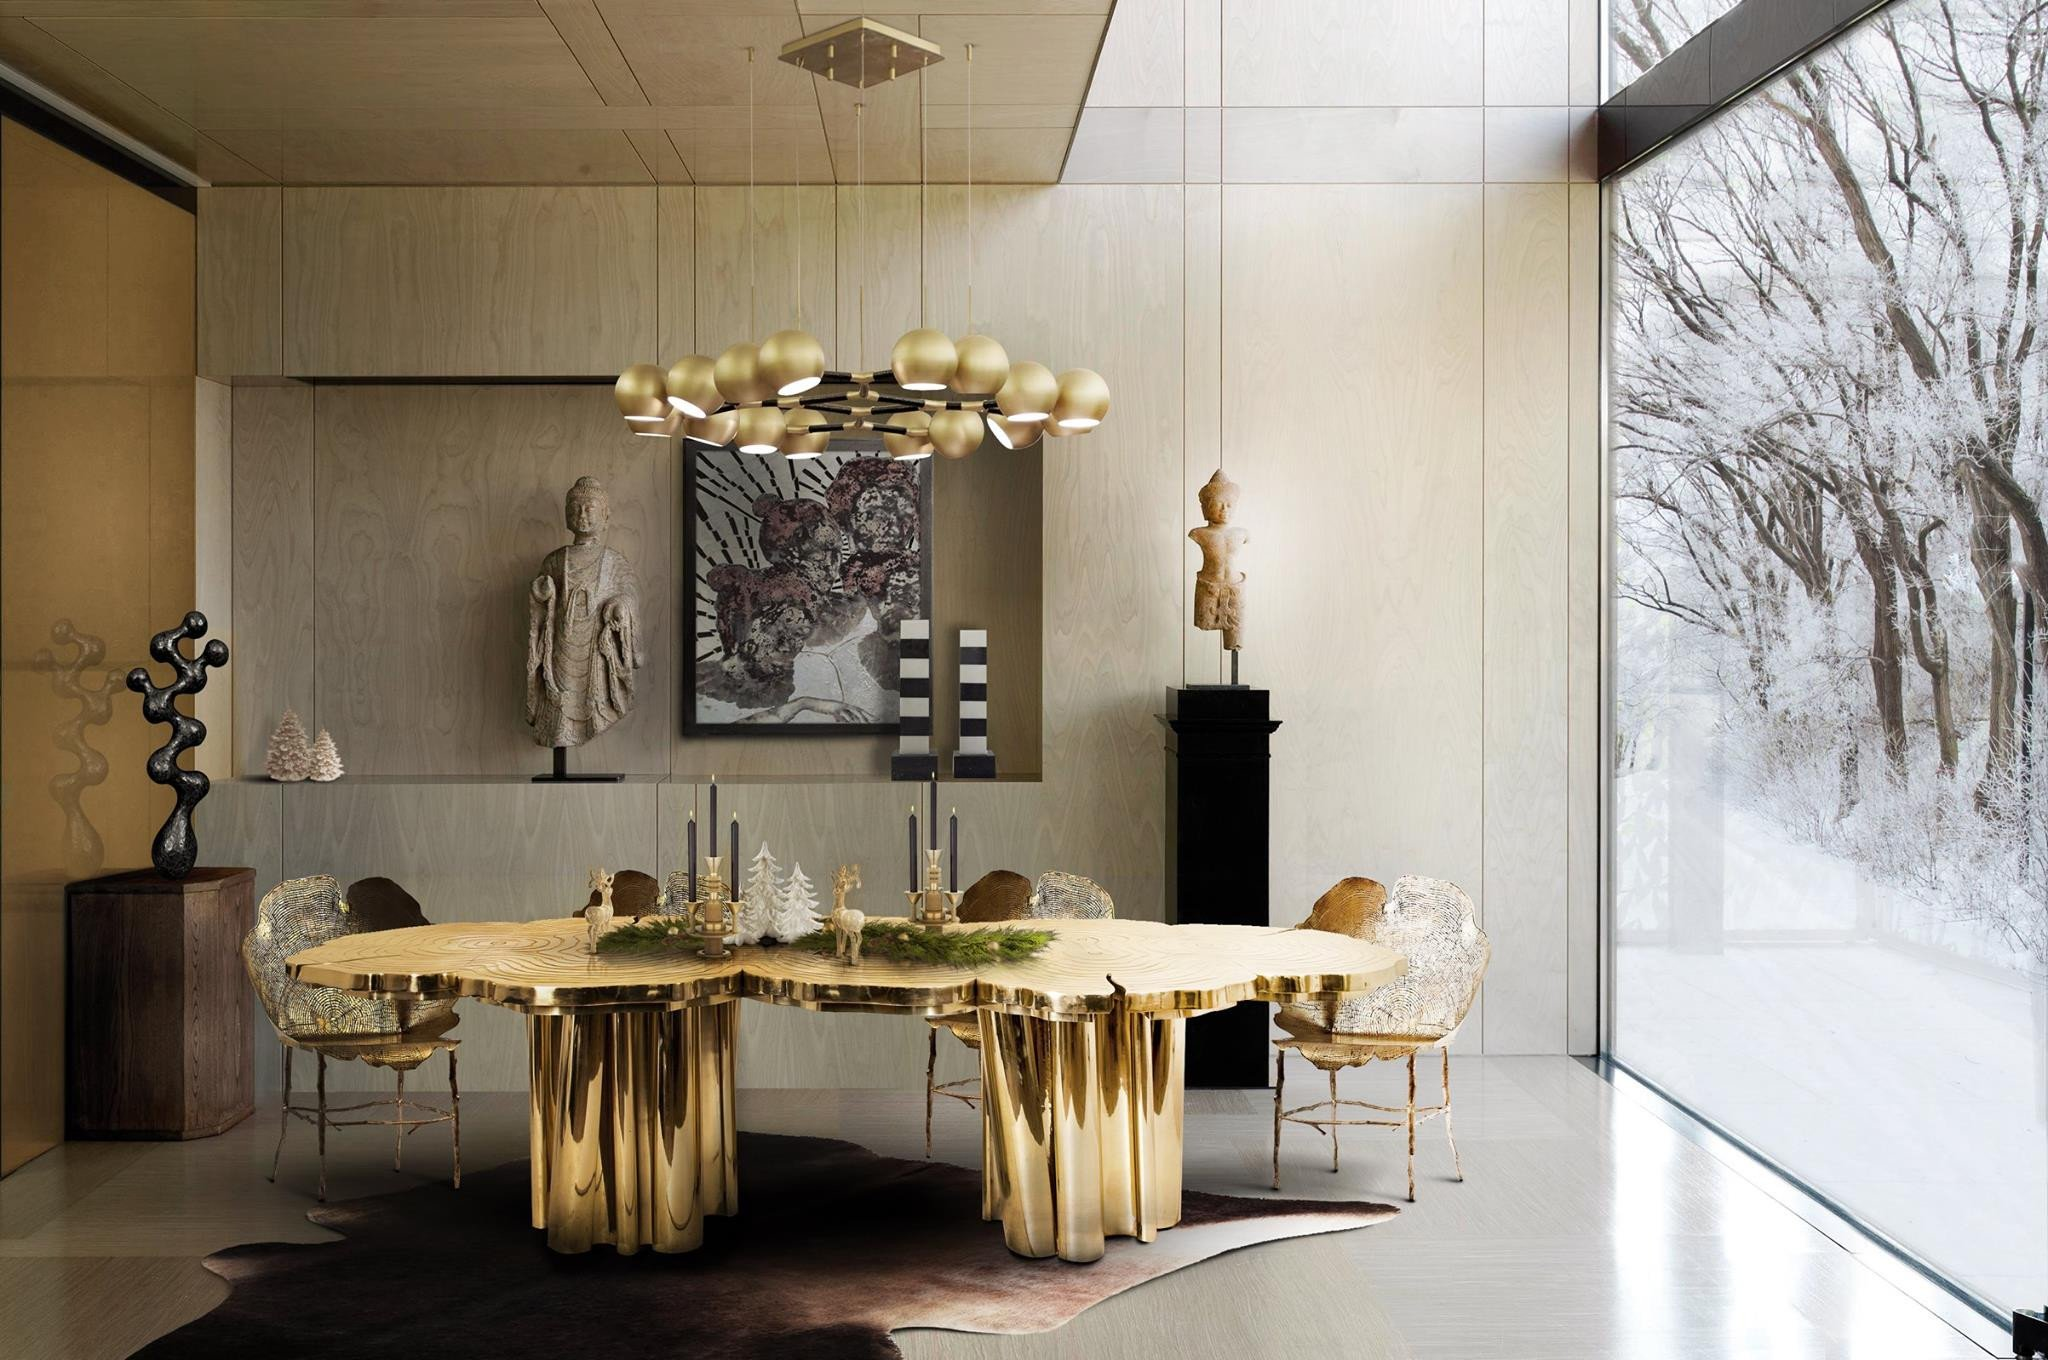 Modern Living Dining Room Decorating Ideas Beautiful the Best Black and Gold Decorating Ideas for Your Dining Room